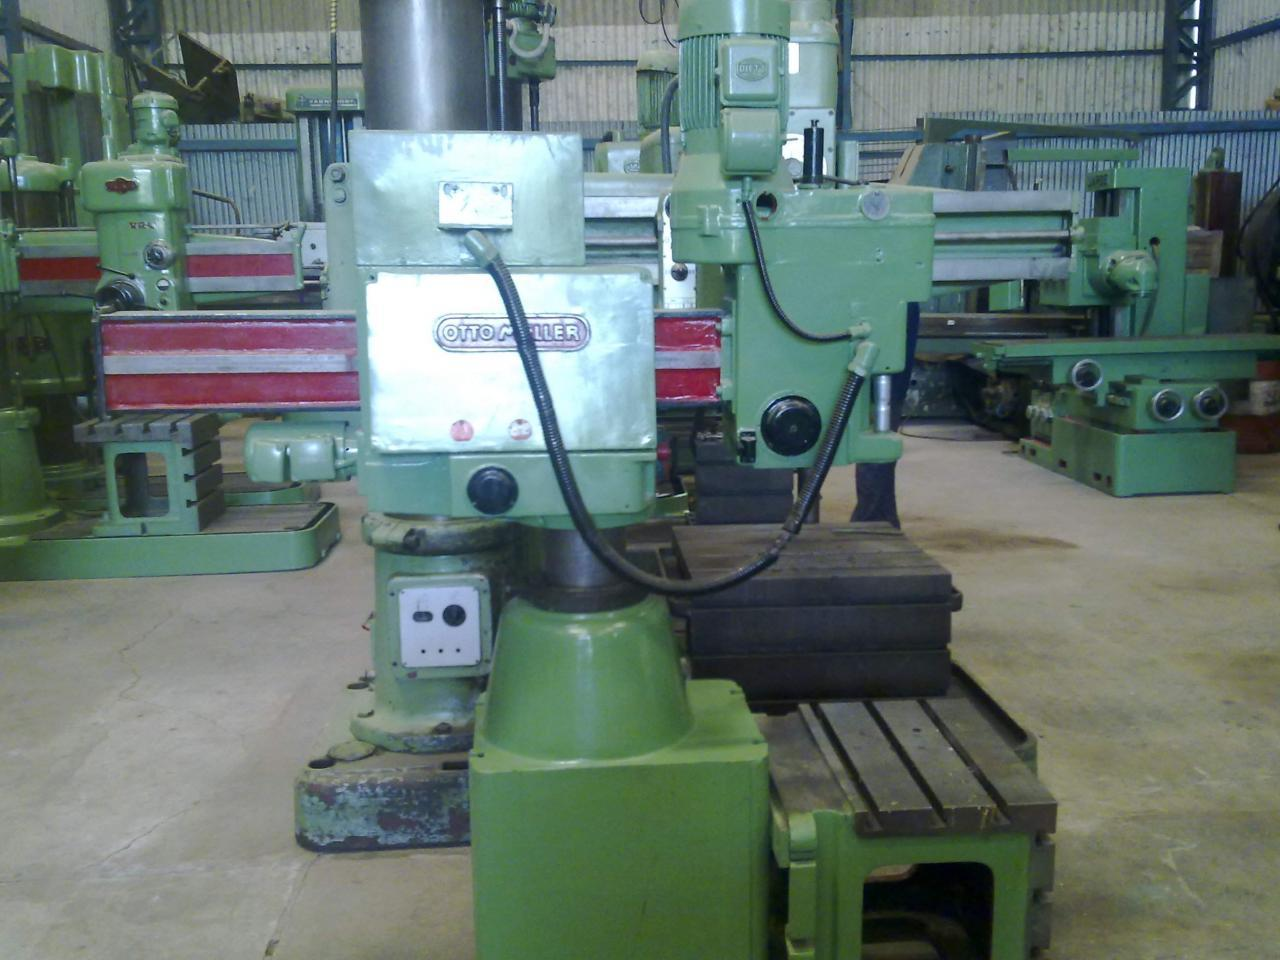 Otto muller radial drill 40mm x 1250 mm.77175123 large